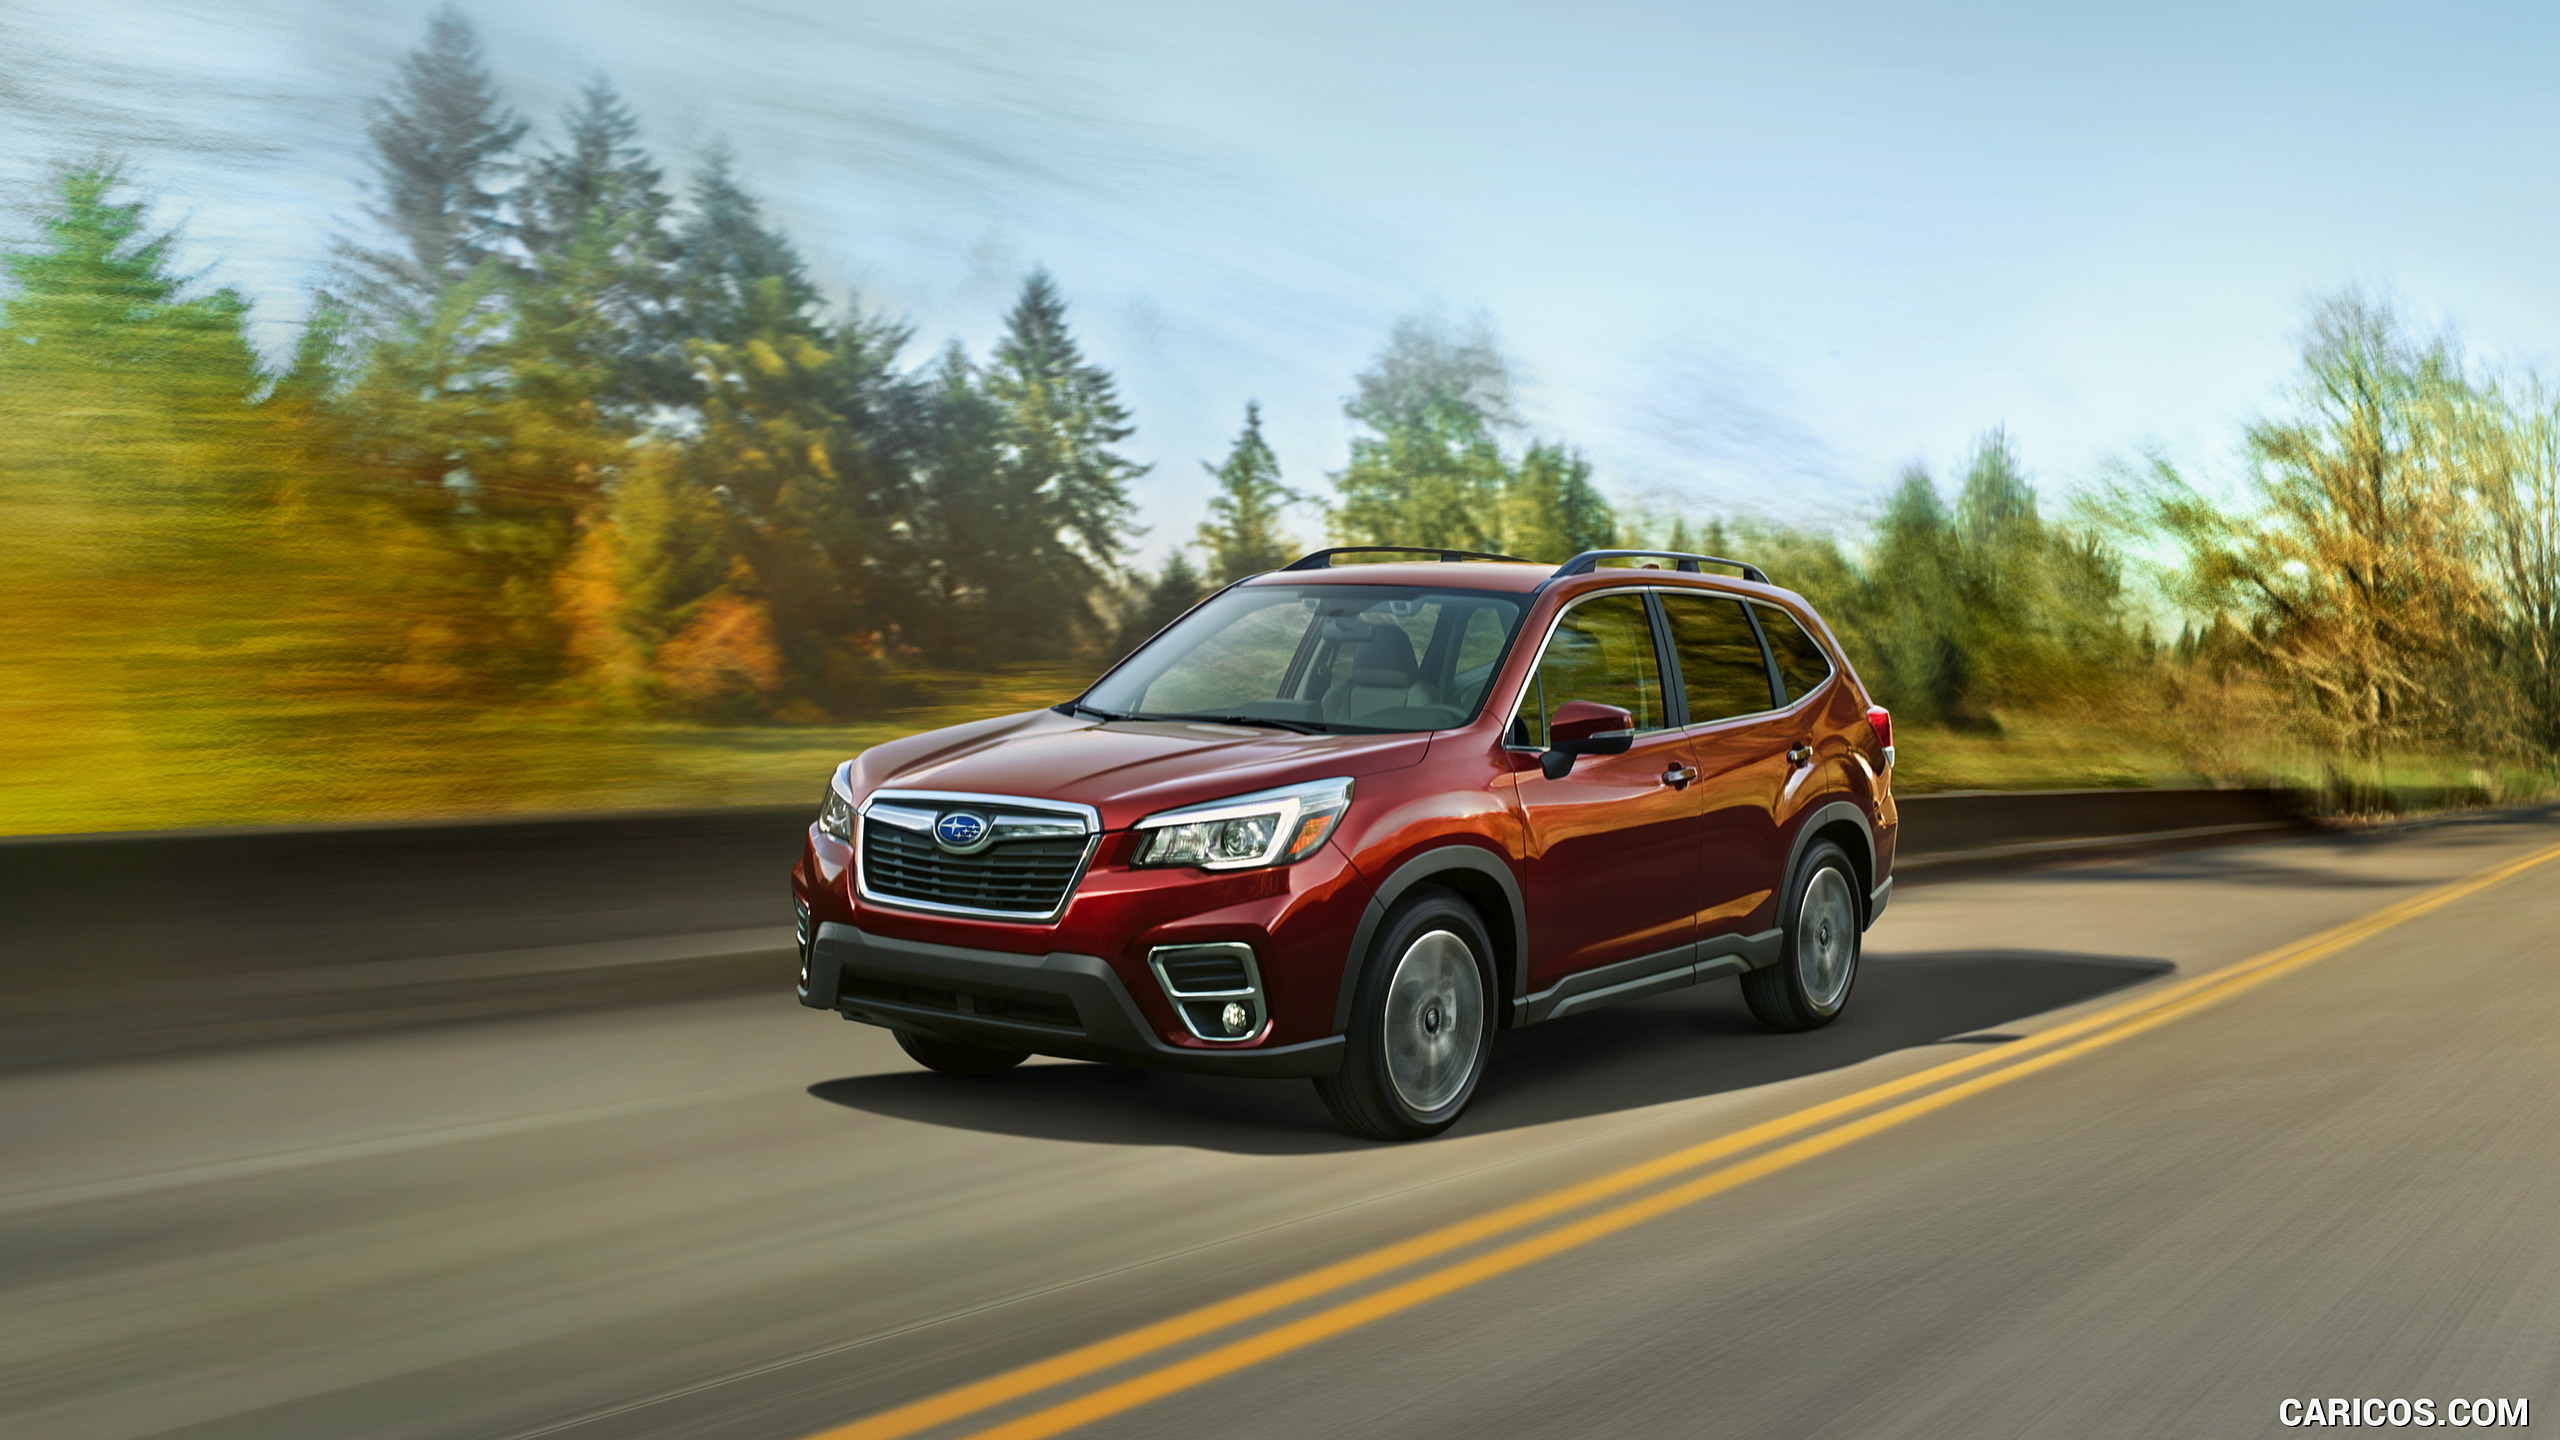 2560x1440 - Subaru Forester Wallpapers 22